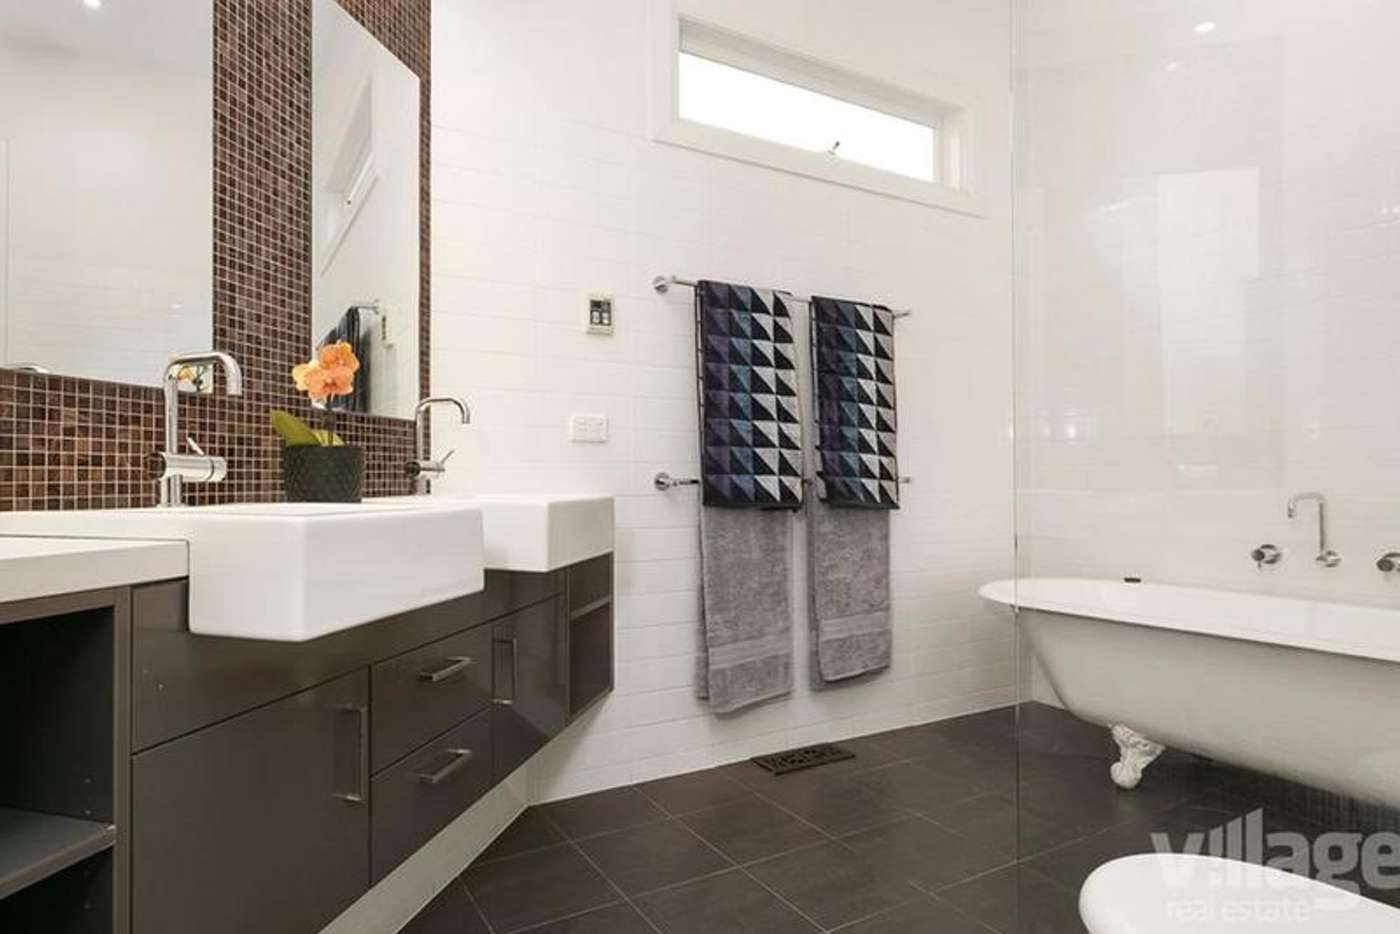 Seventh view of Homely house listing, 12 Stanhope Street, West Footscray VIC 3012